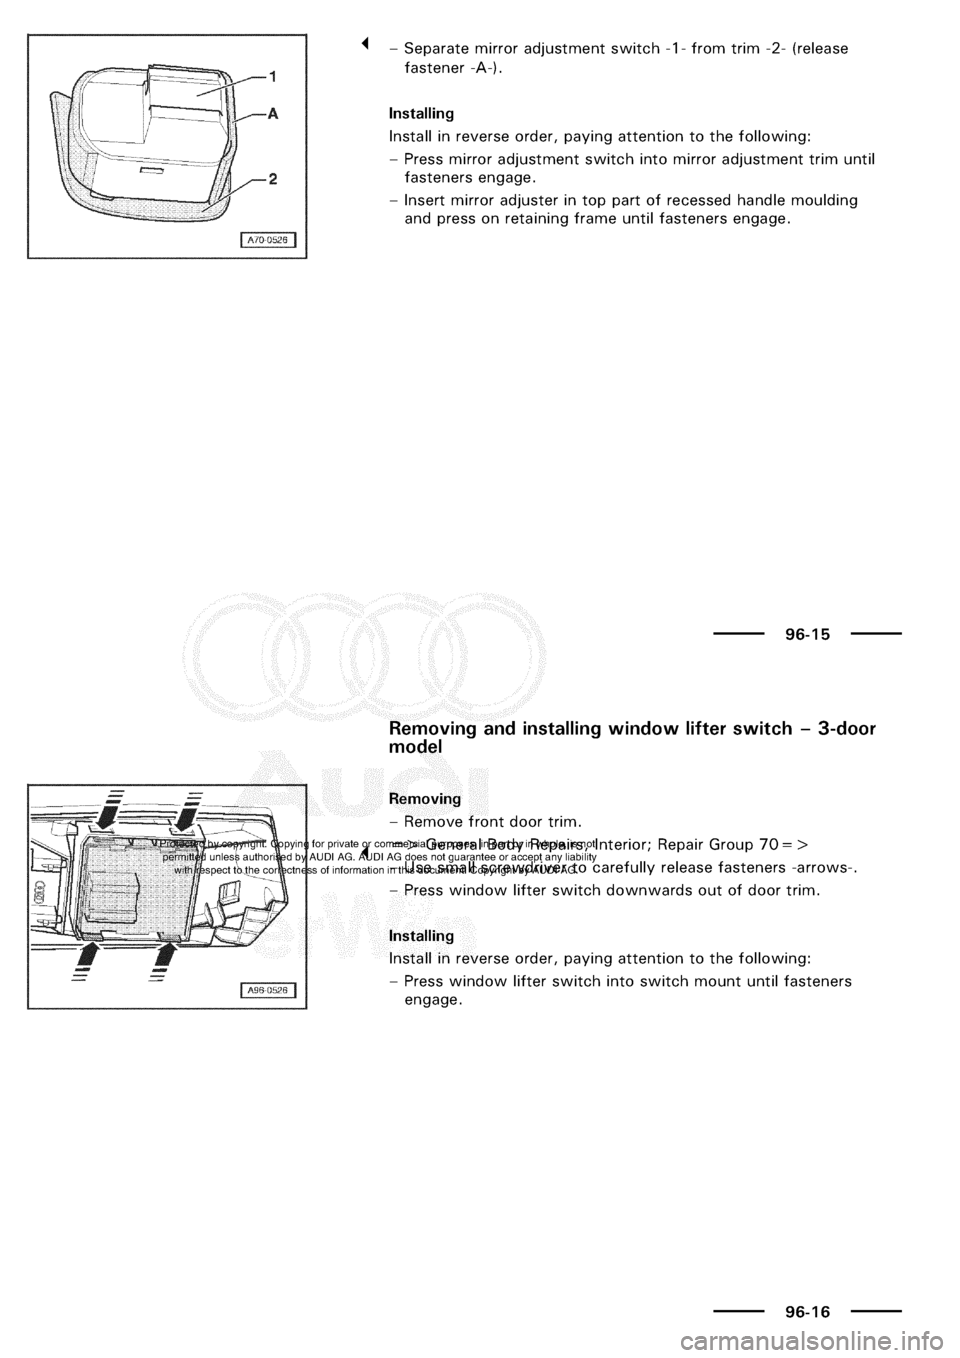 AUDI A3 2001 8L / 1.G Electrical System Workshop Manual